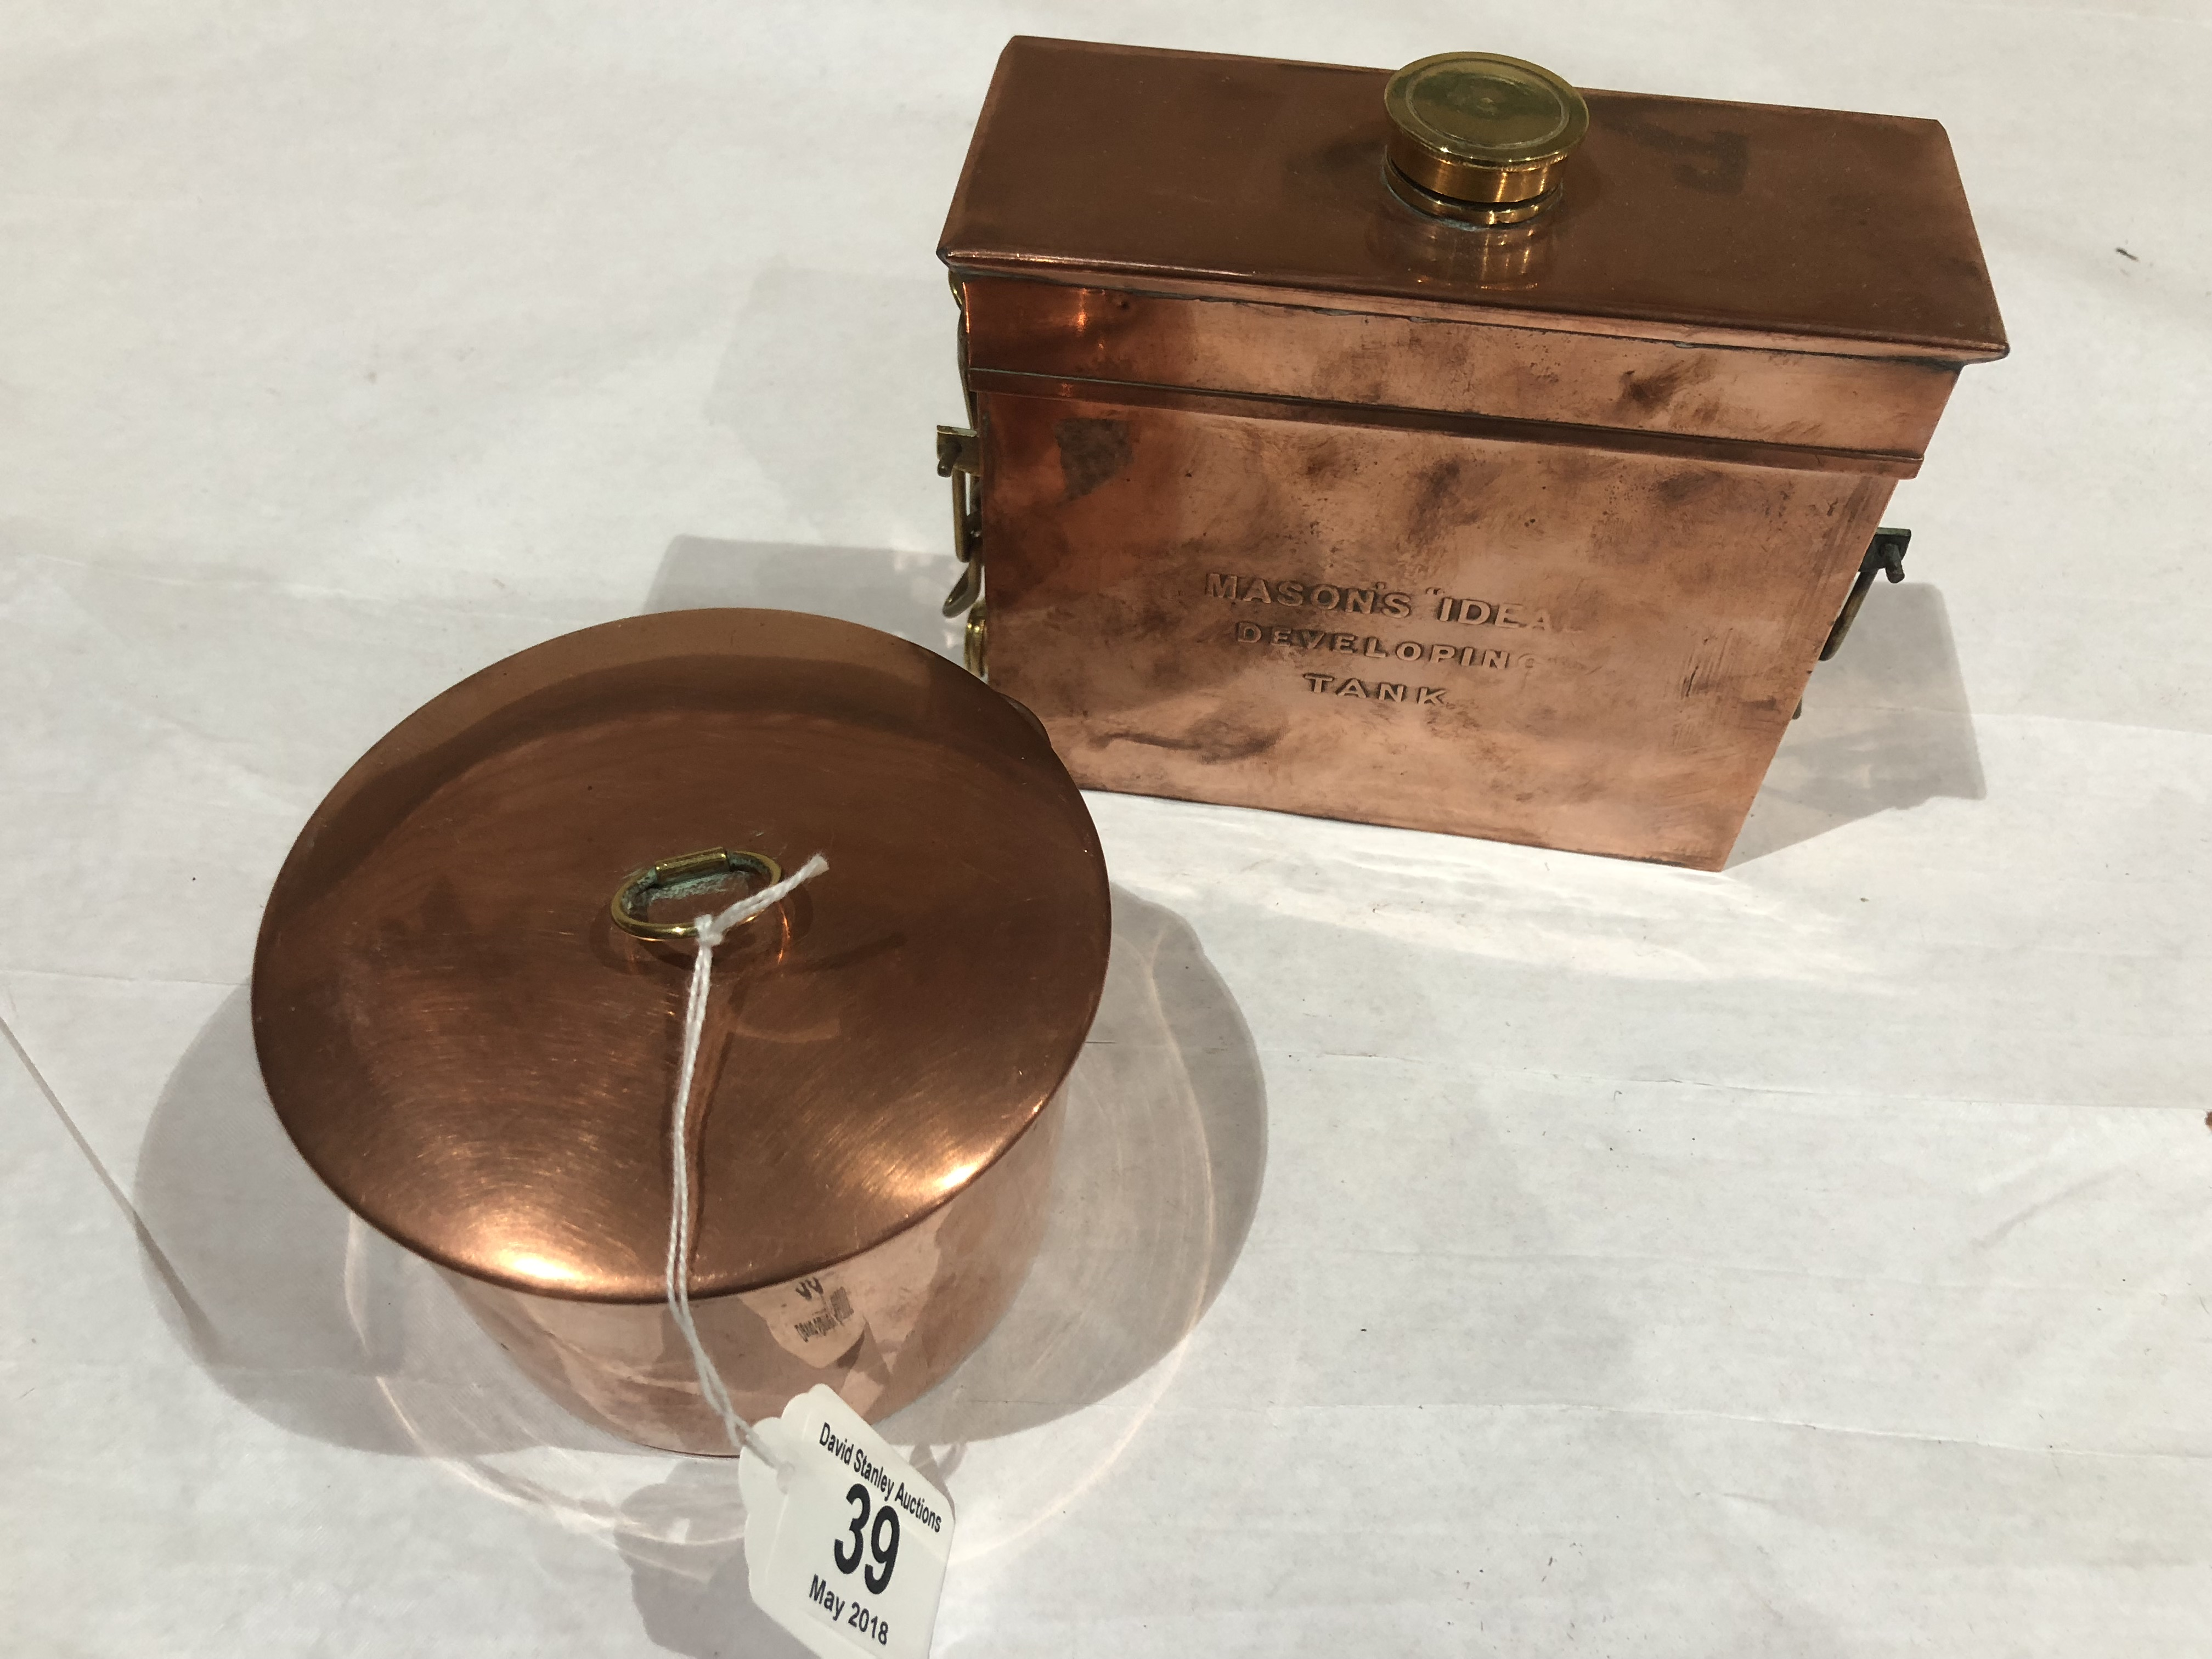 Lot 39 - A copper developing tank and another G++